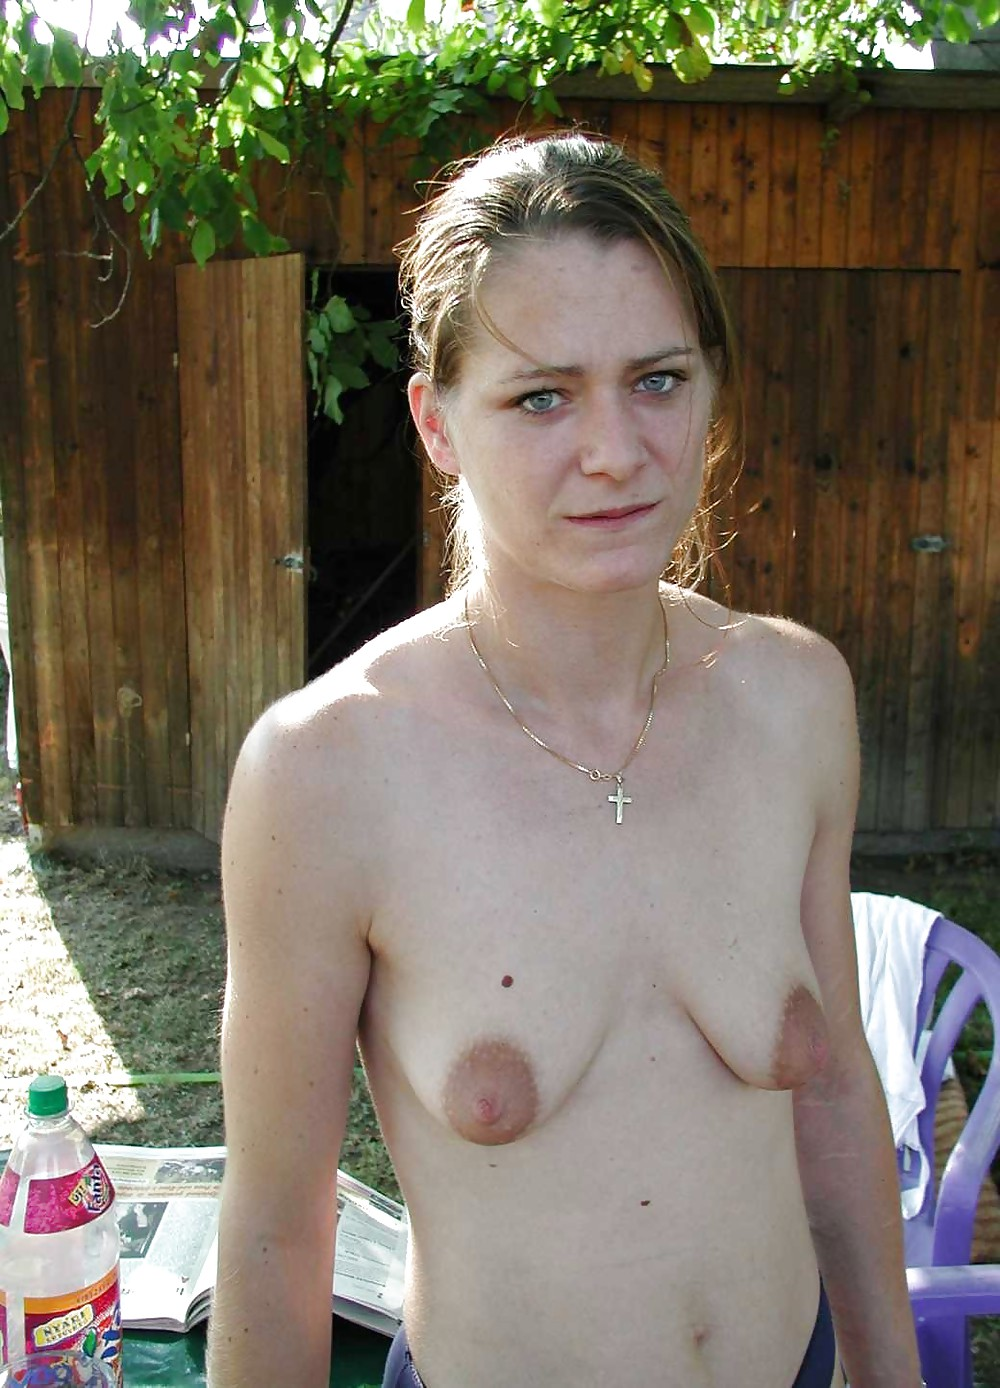 young-girl-saggy-boobs-damsel-suicide-free-nudes